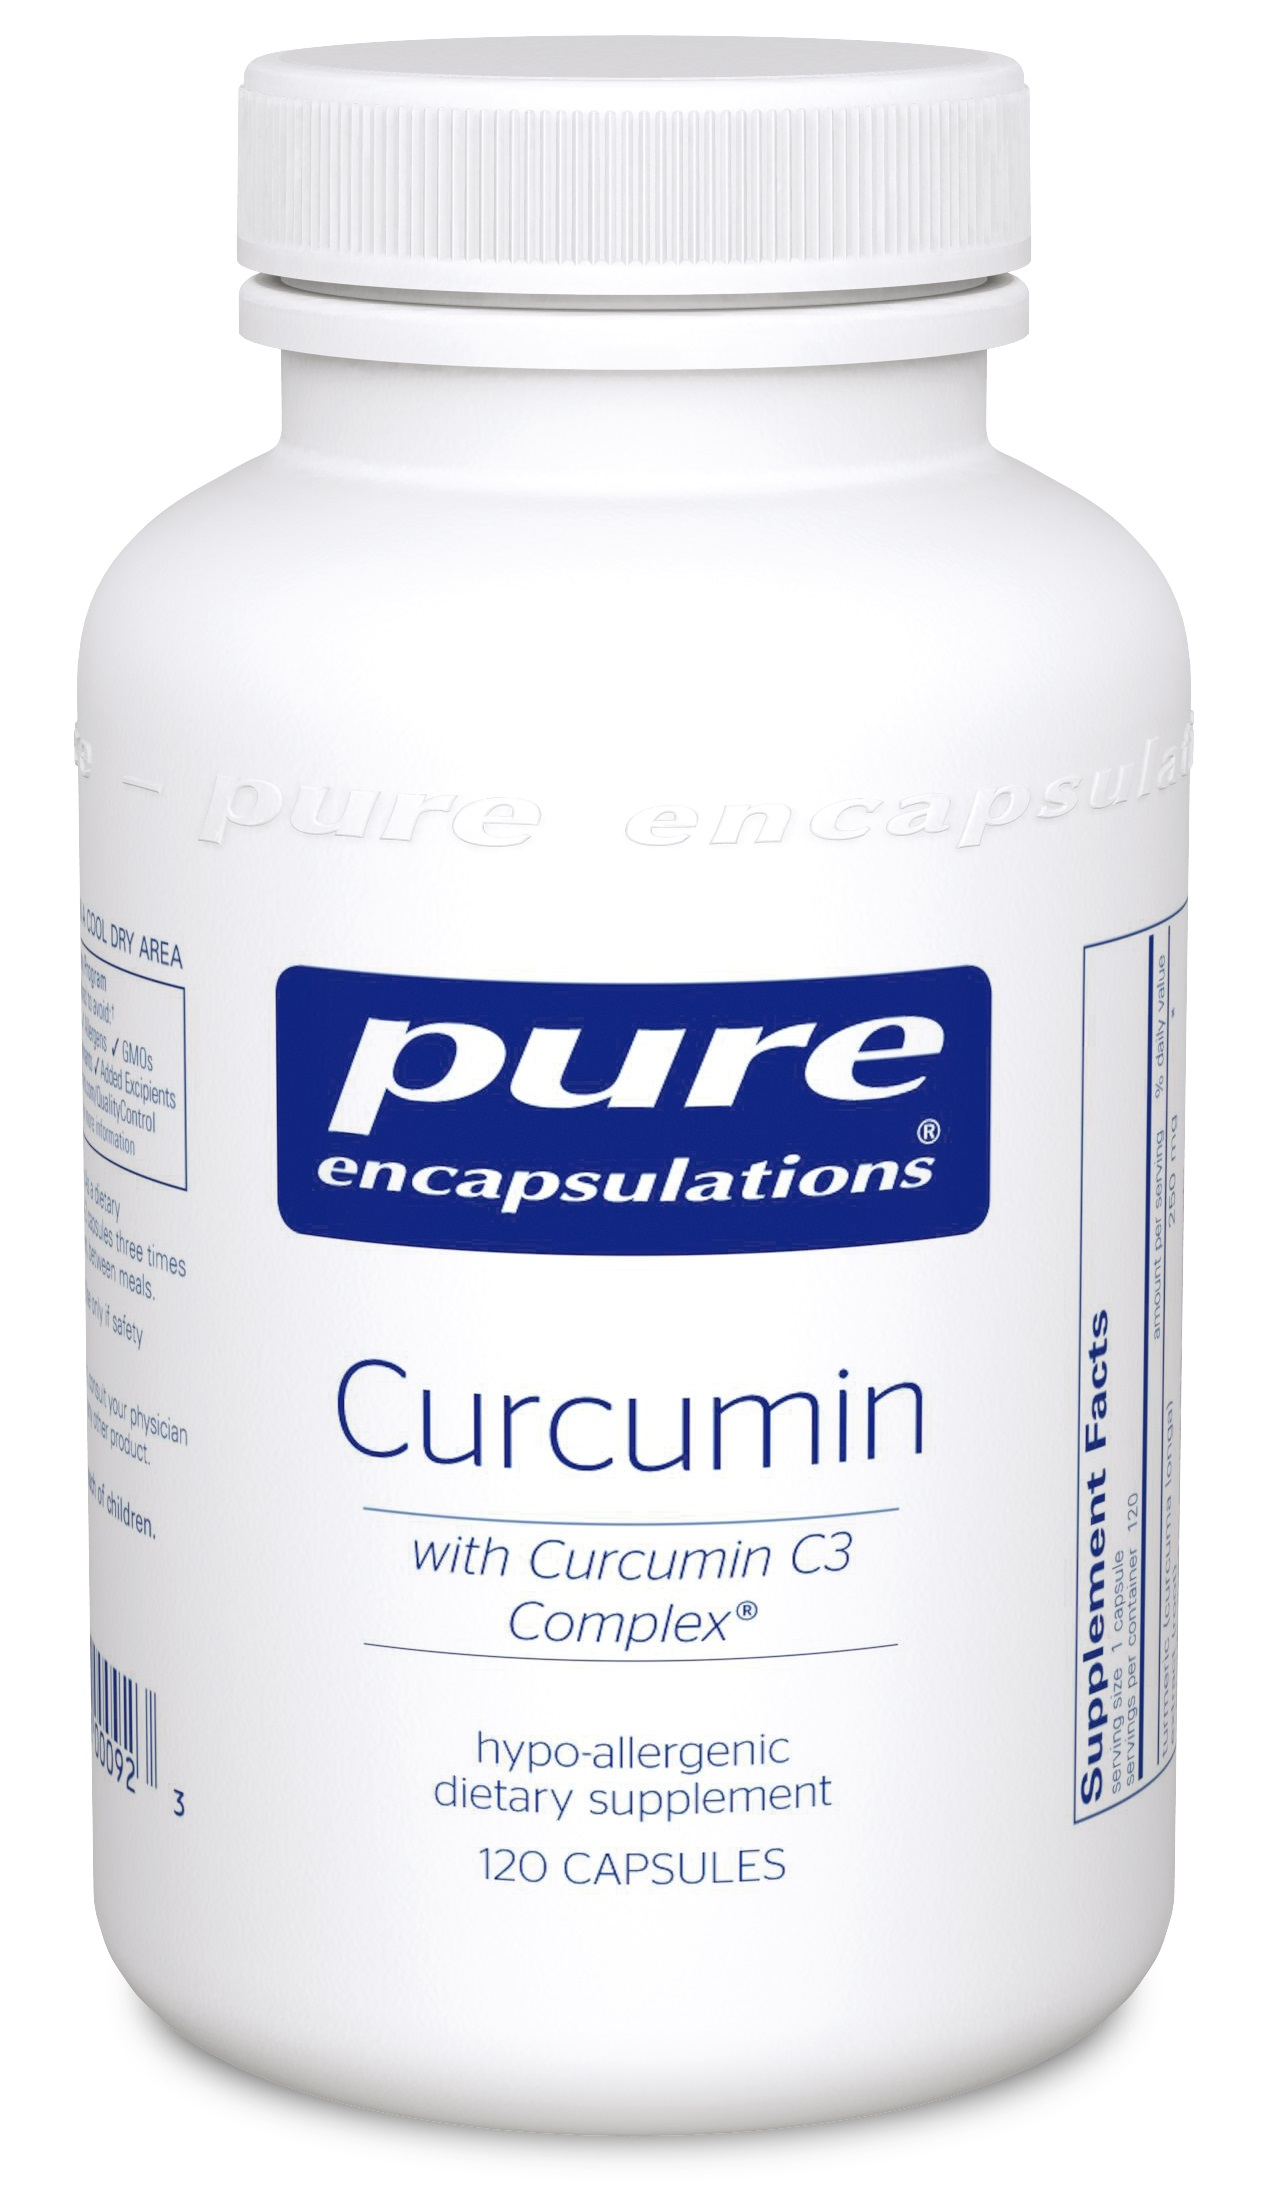 Pure Encapsulations Curcumin